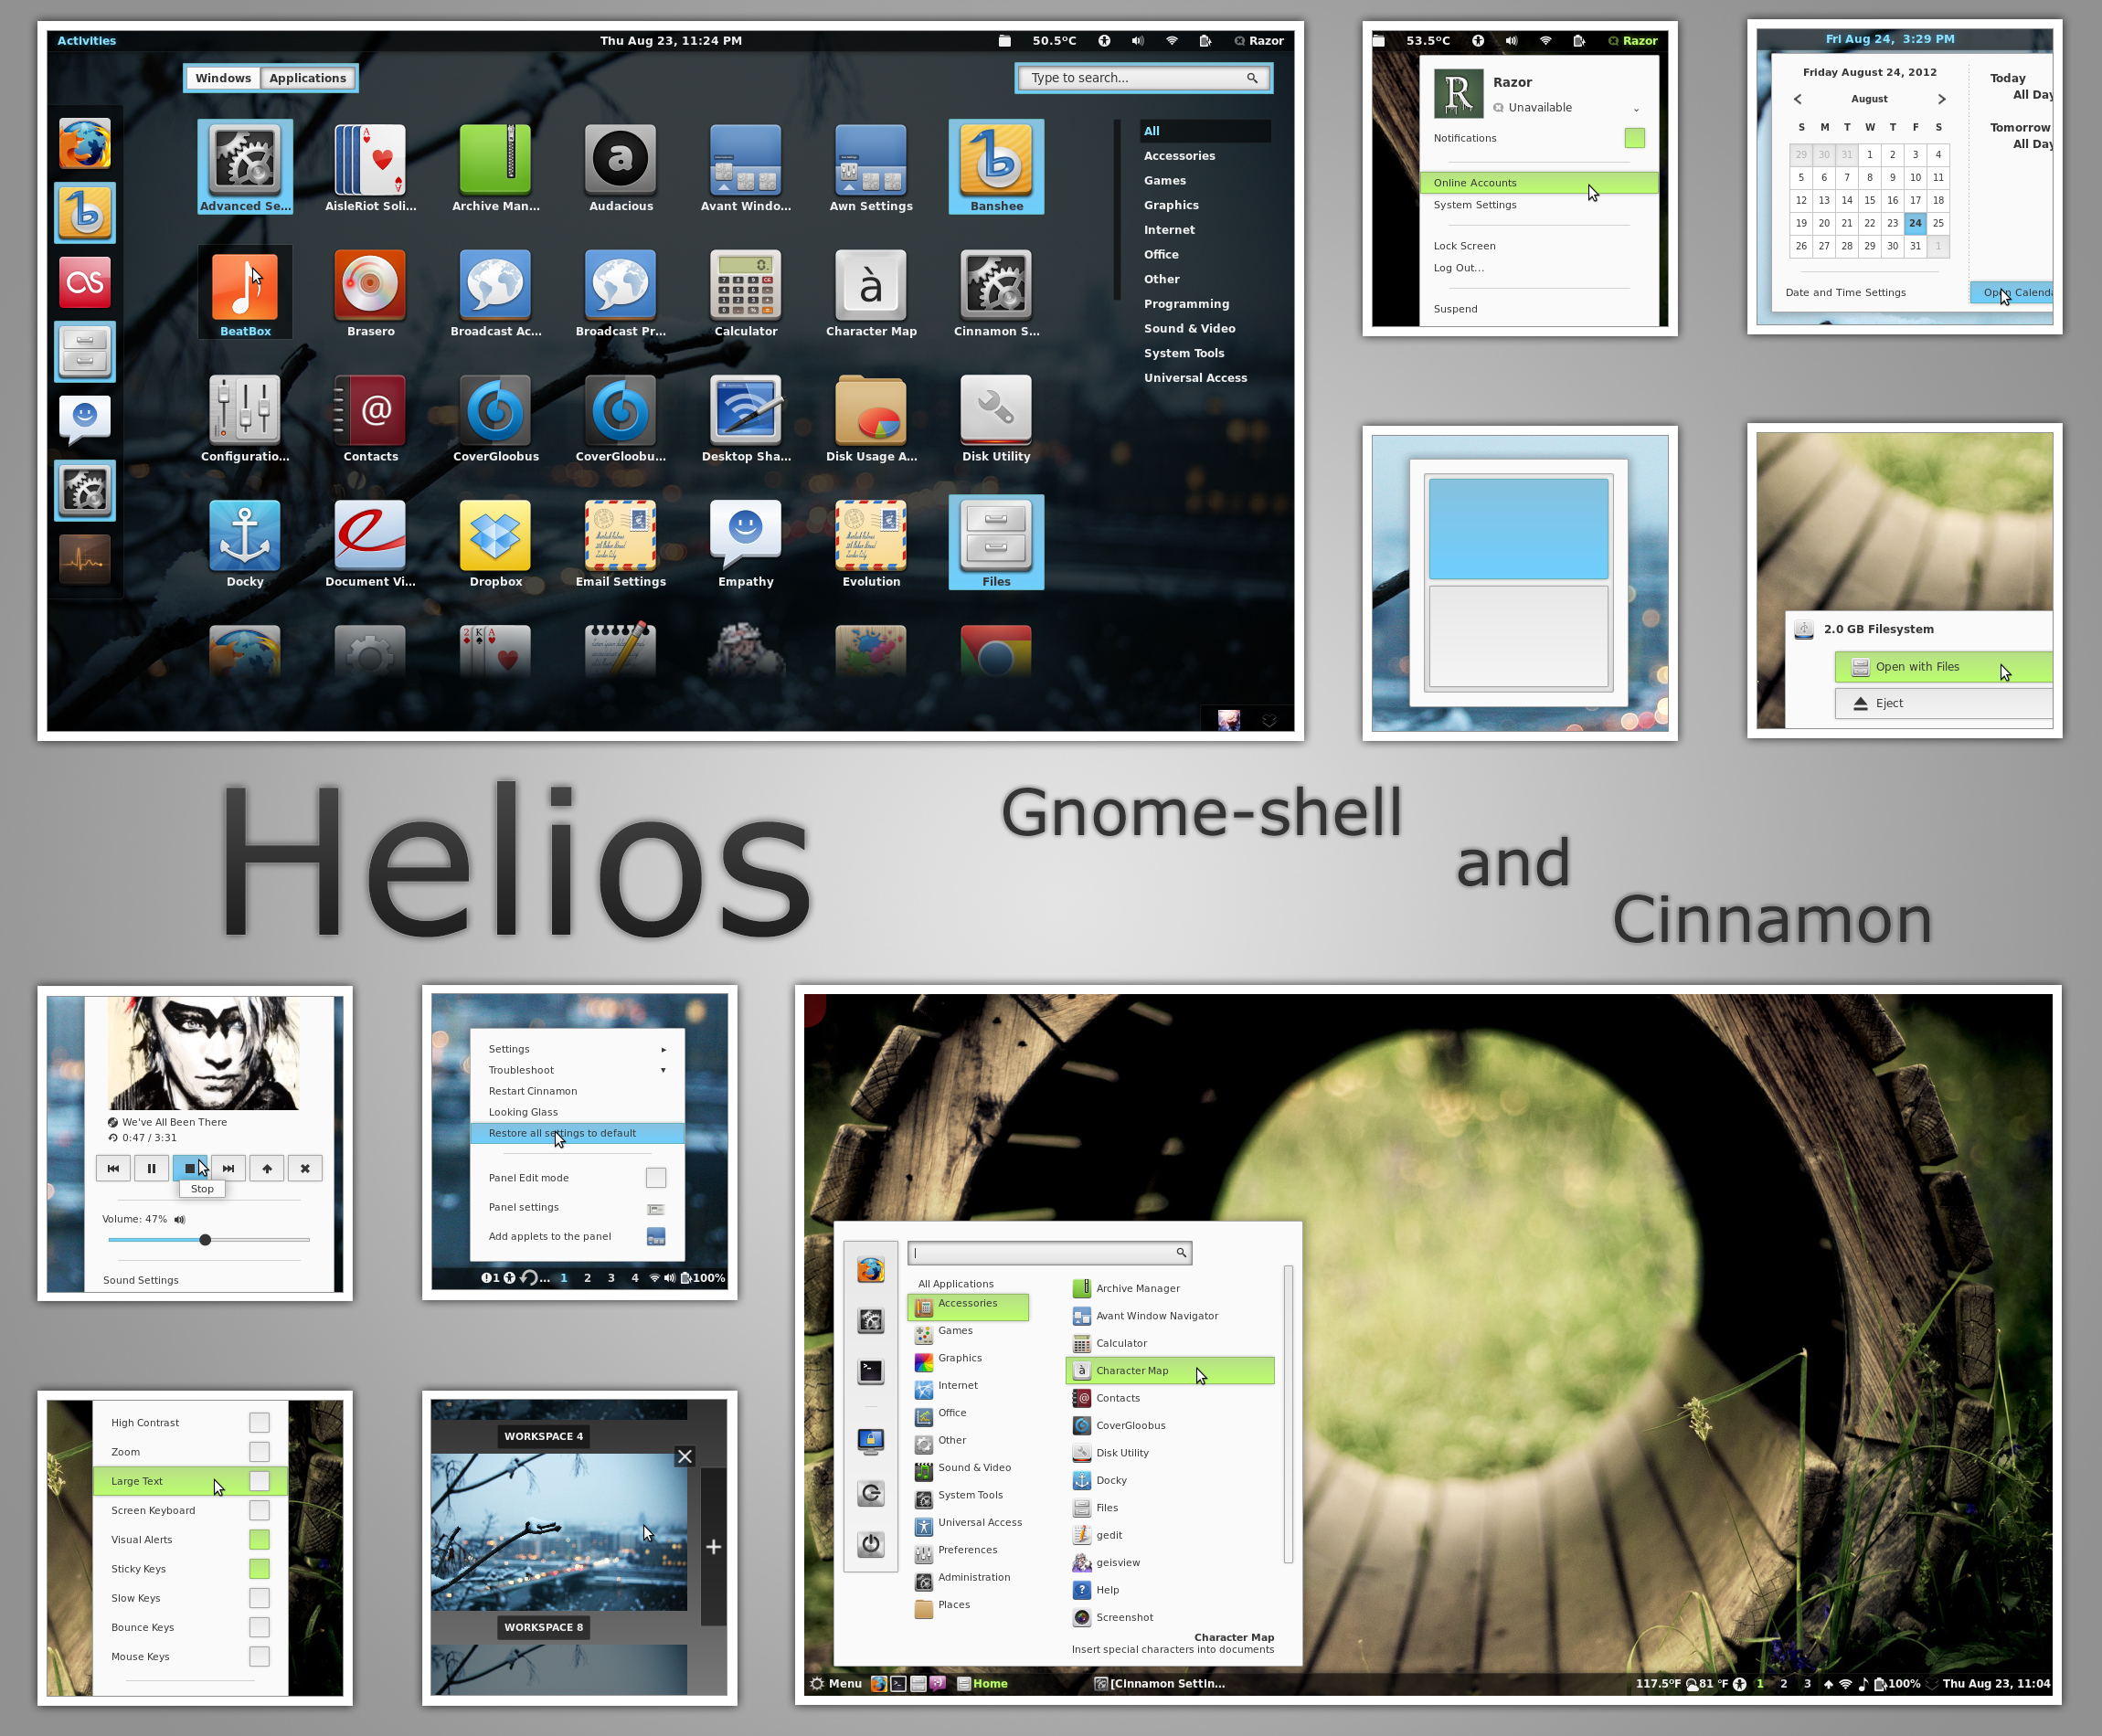 Helios - Gnome shell and Cinnamon